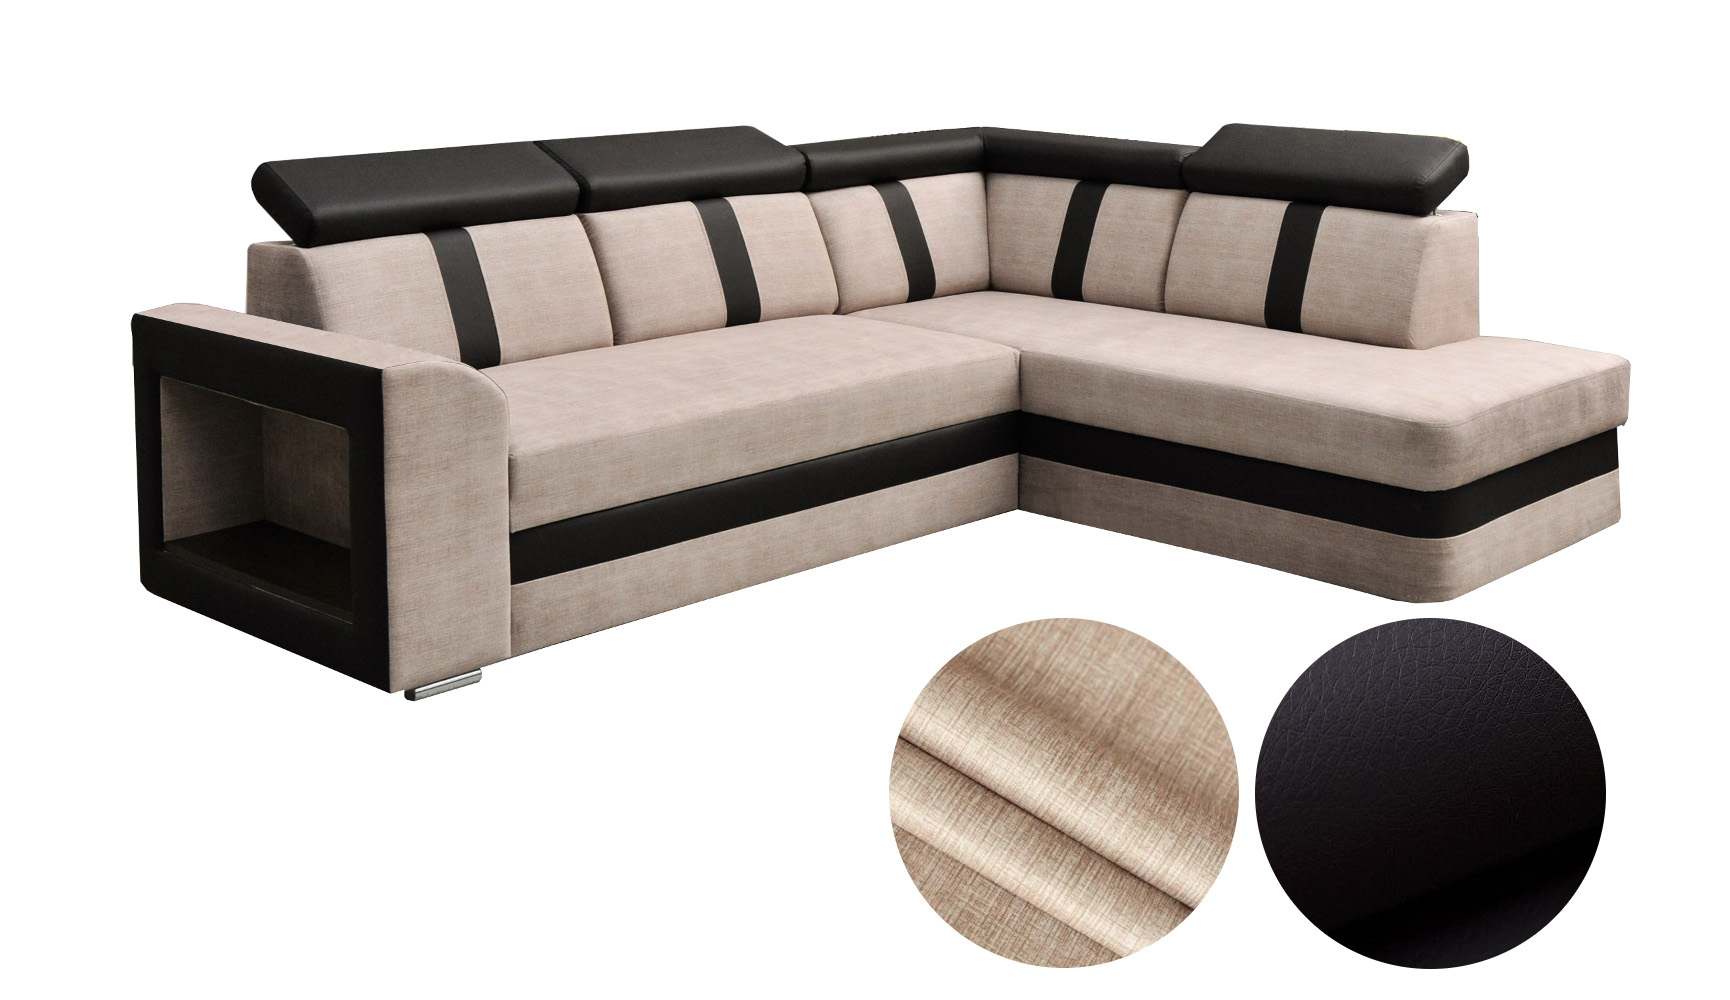 ecksofa sofa eckcouch couch mit schlaffunktion bettkasten. Black Bedroom Furniture Sets. Home Design Ideas